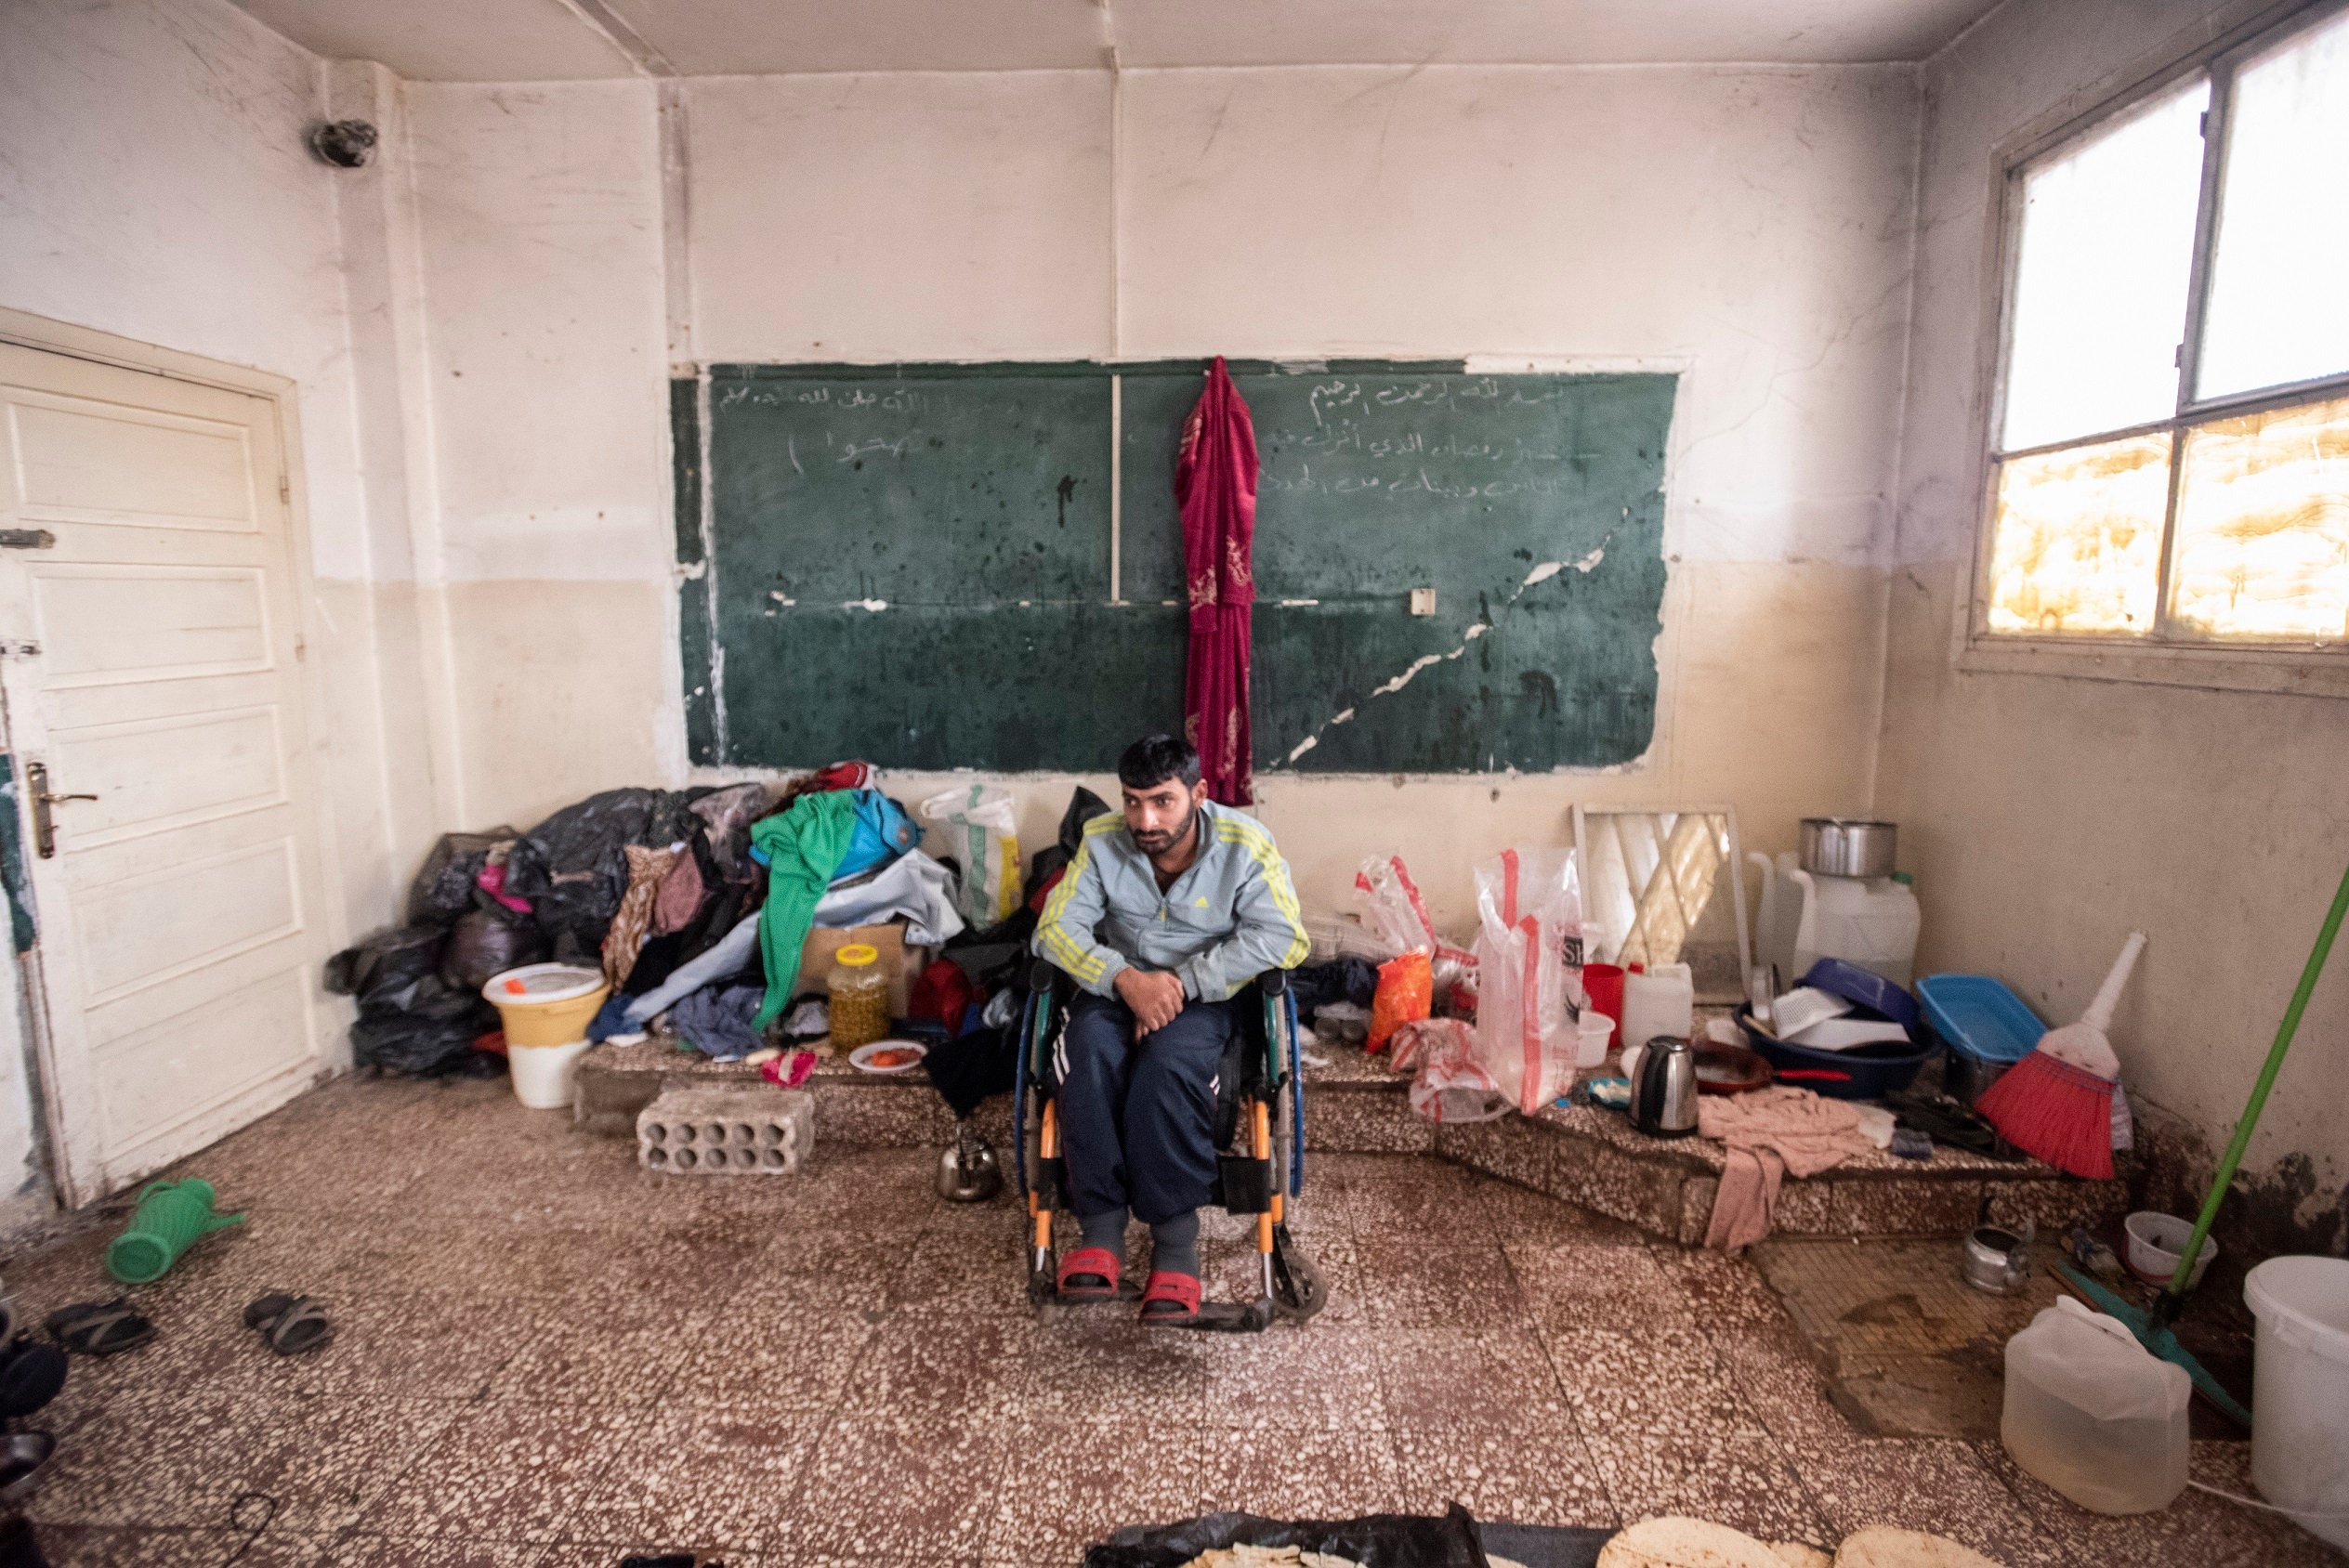 Displaced people in northeast Syria